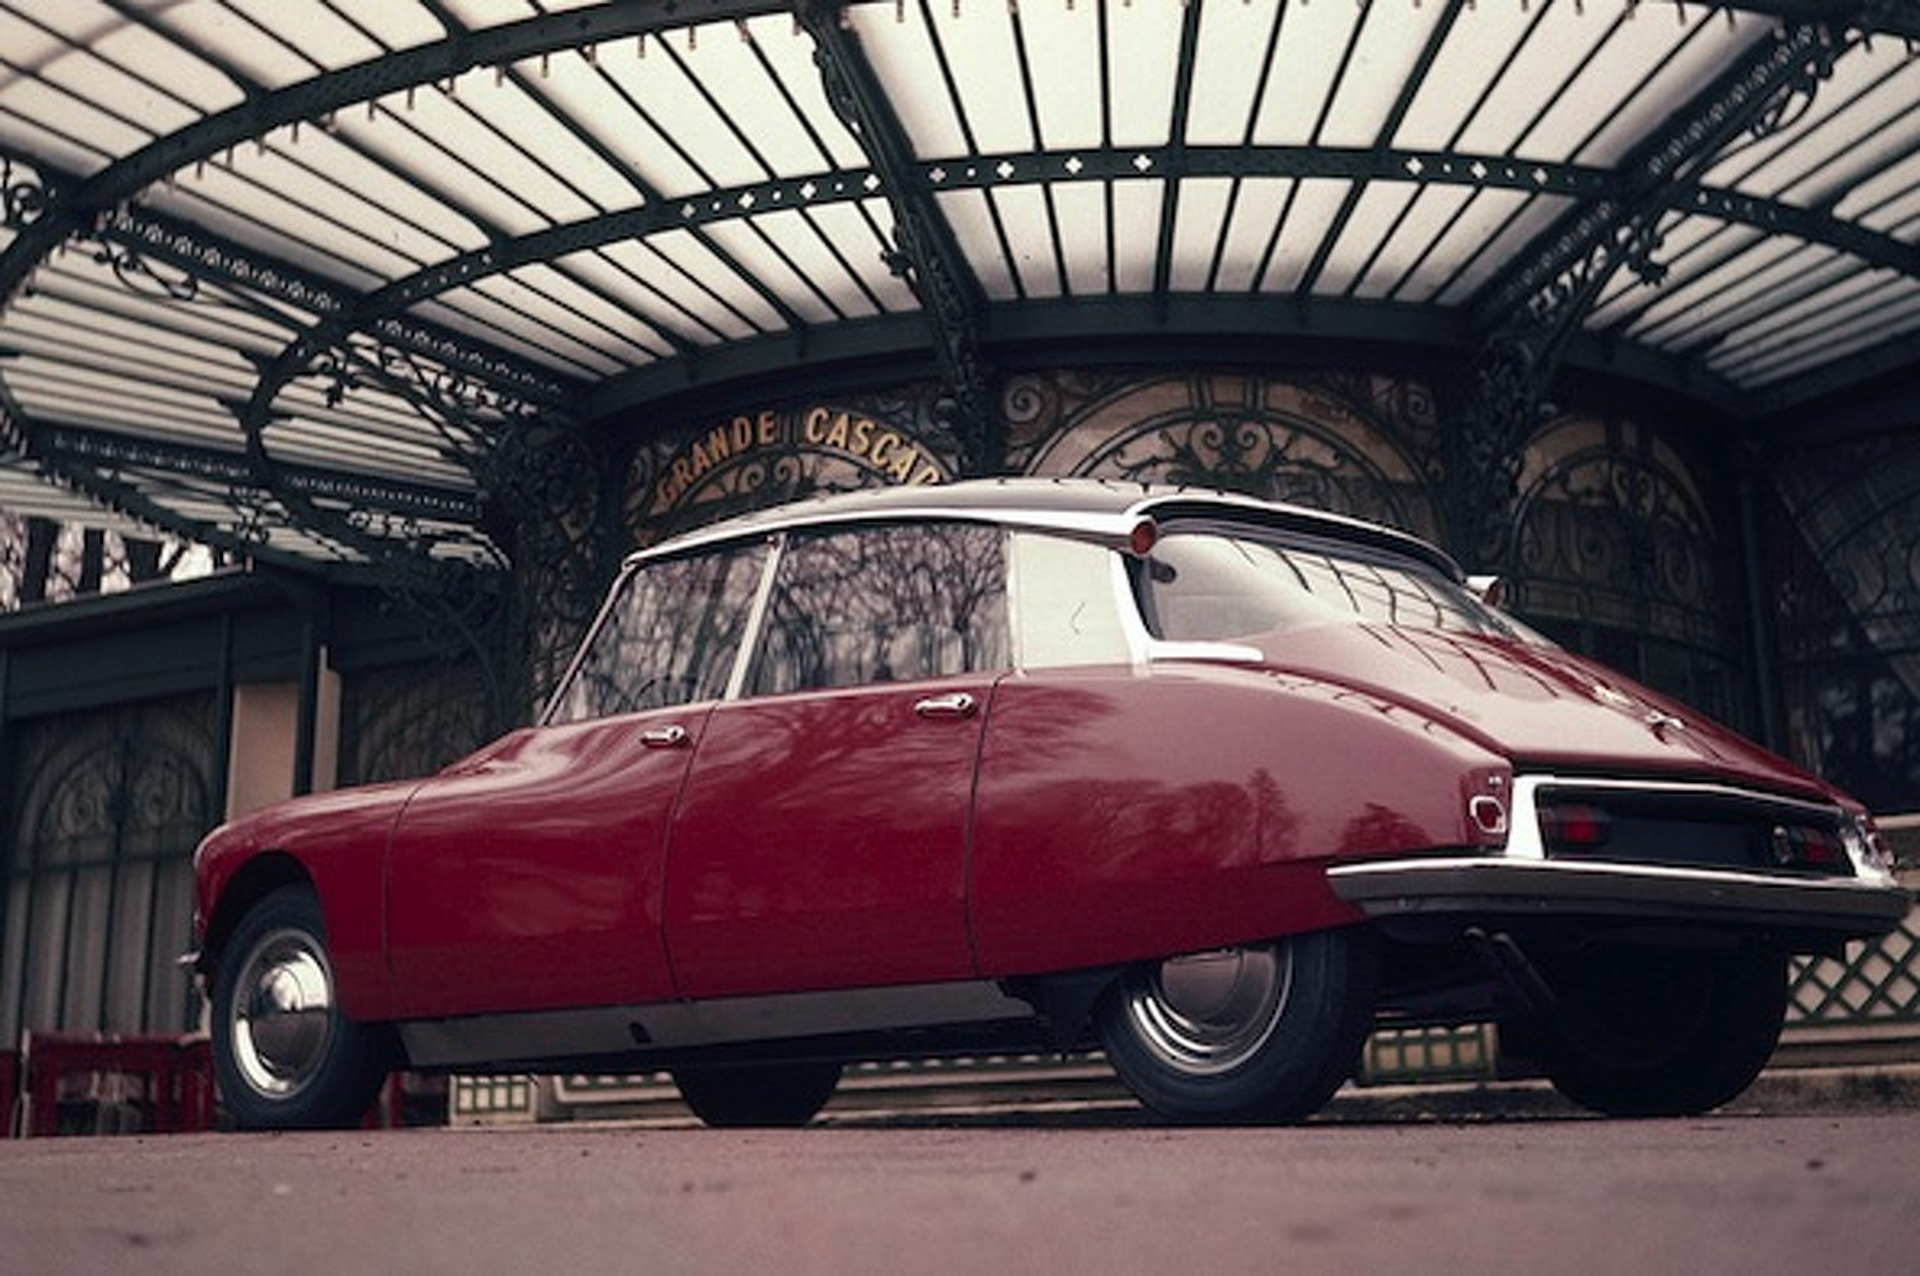 Citroen DS: A Goddess of French Design